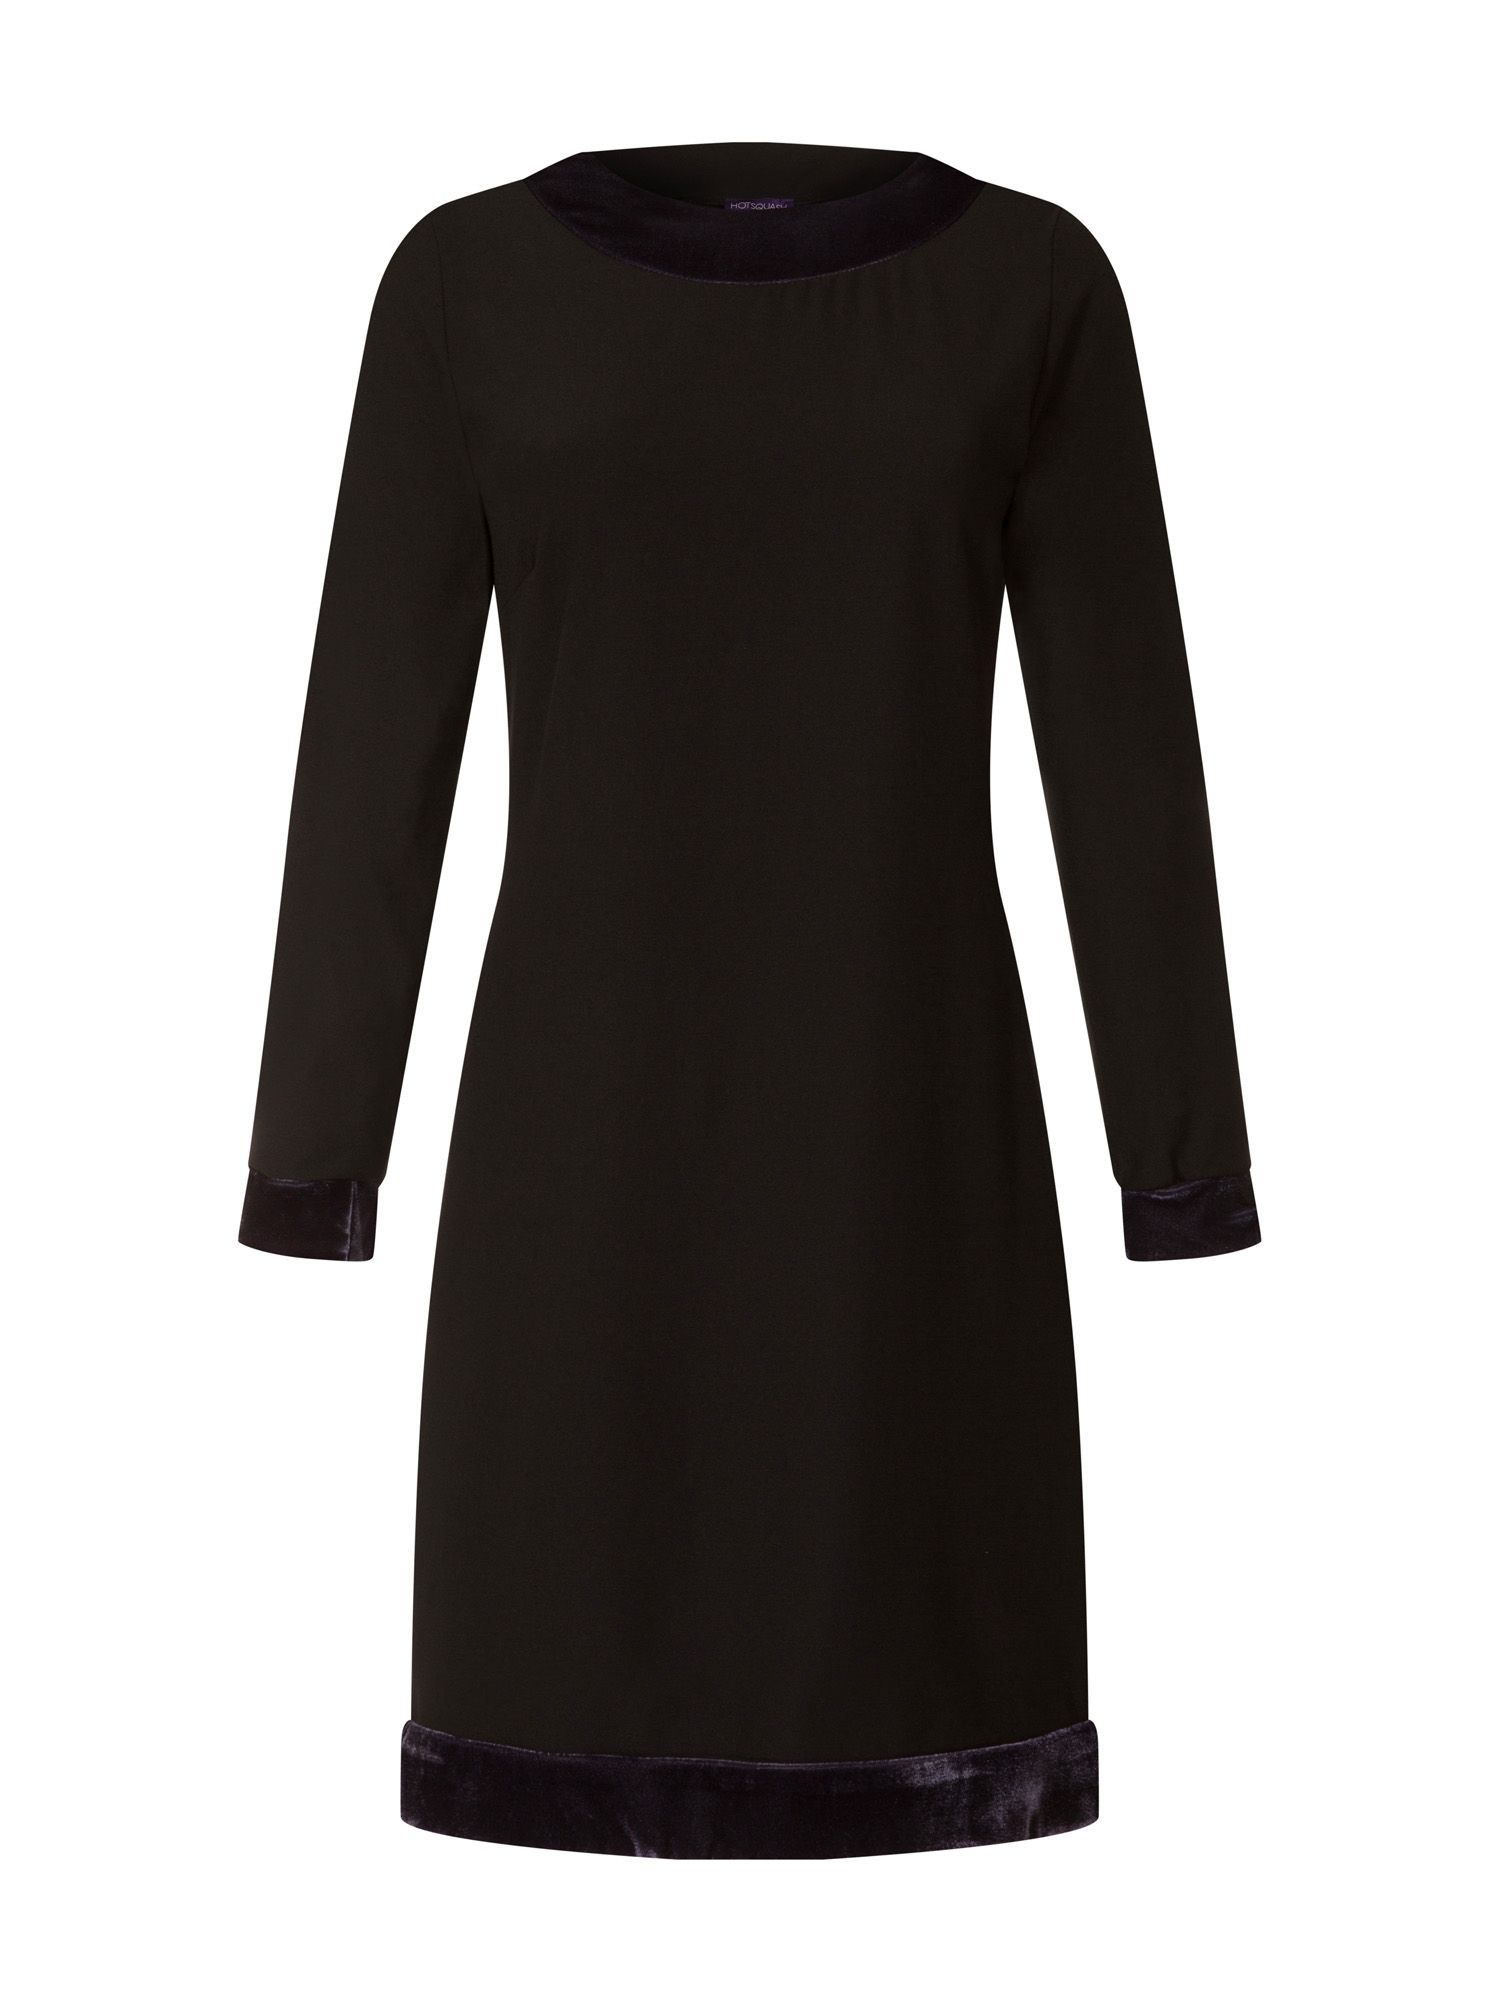 HotSquash Swing Dress with Velvet in Clever Fabric, Black